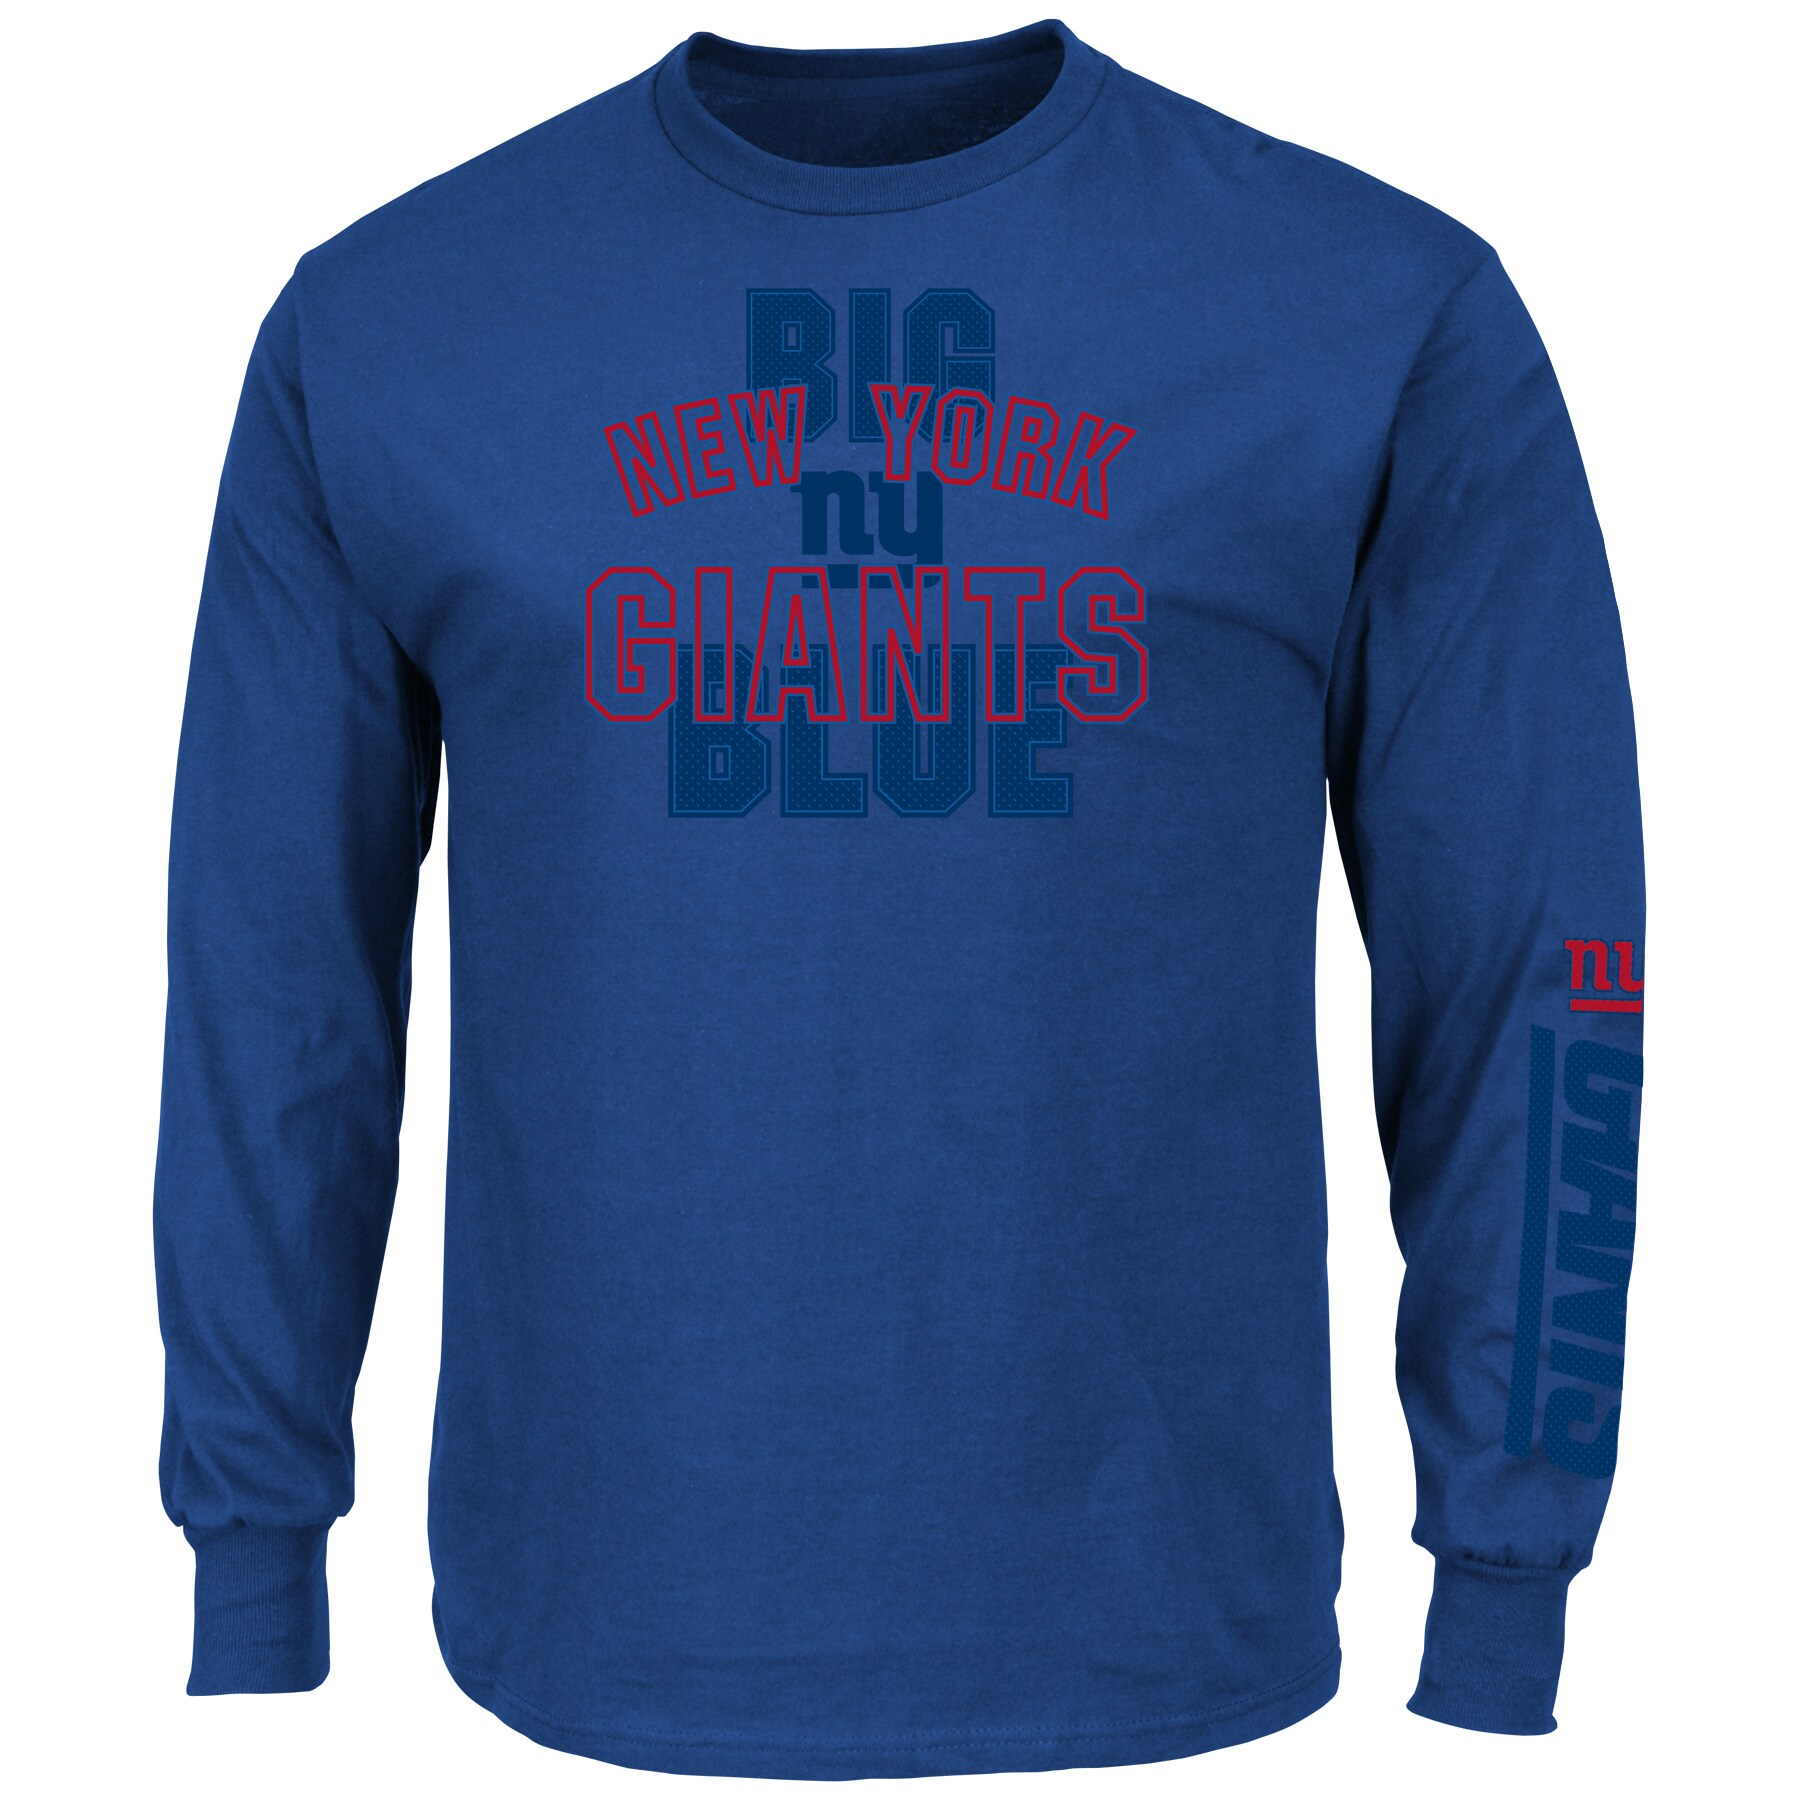 New York Giants Majestic Primary Receiver Slogan Long Sleeve T-Shirt - Royal